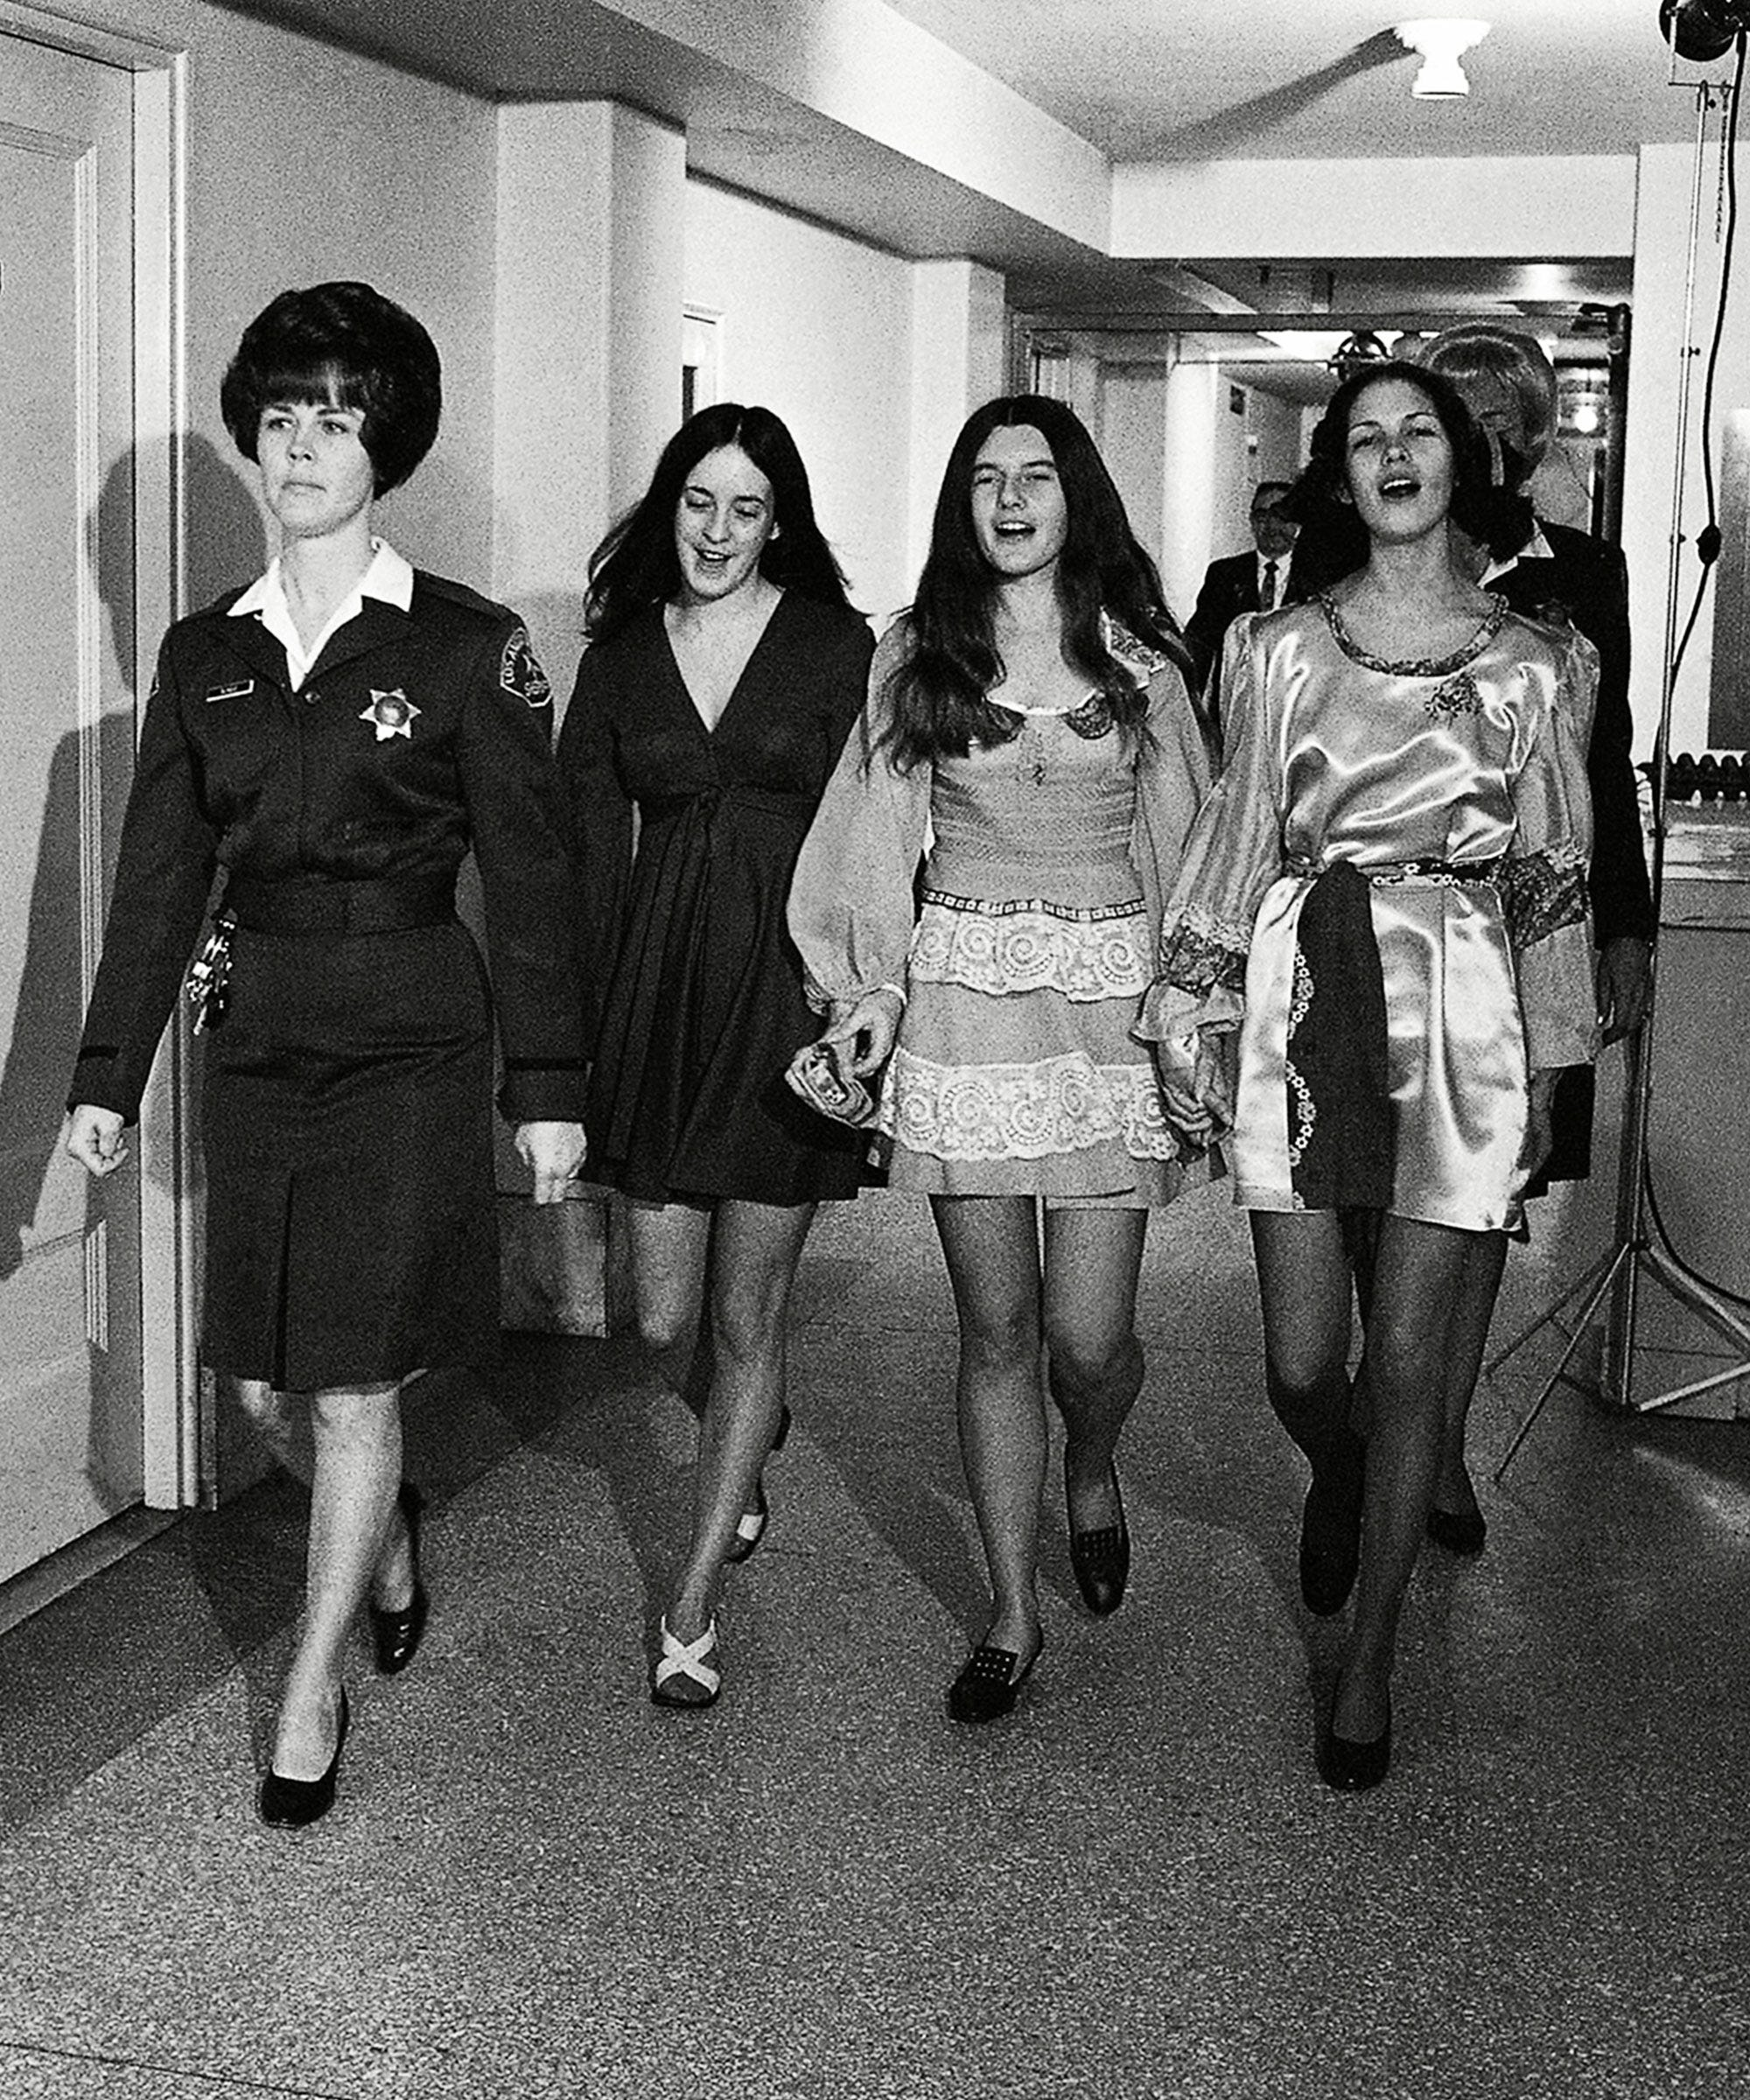 Are The Manson Girls Still In Jail?